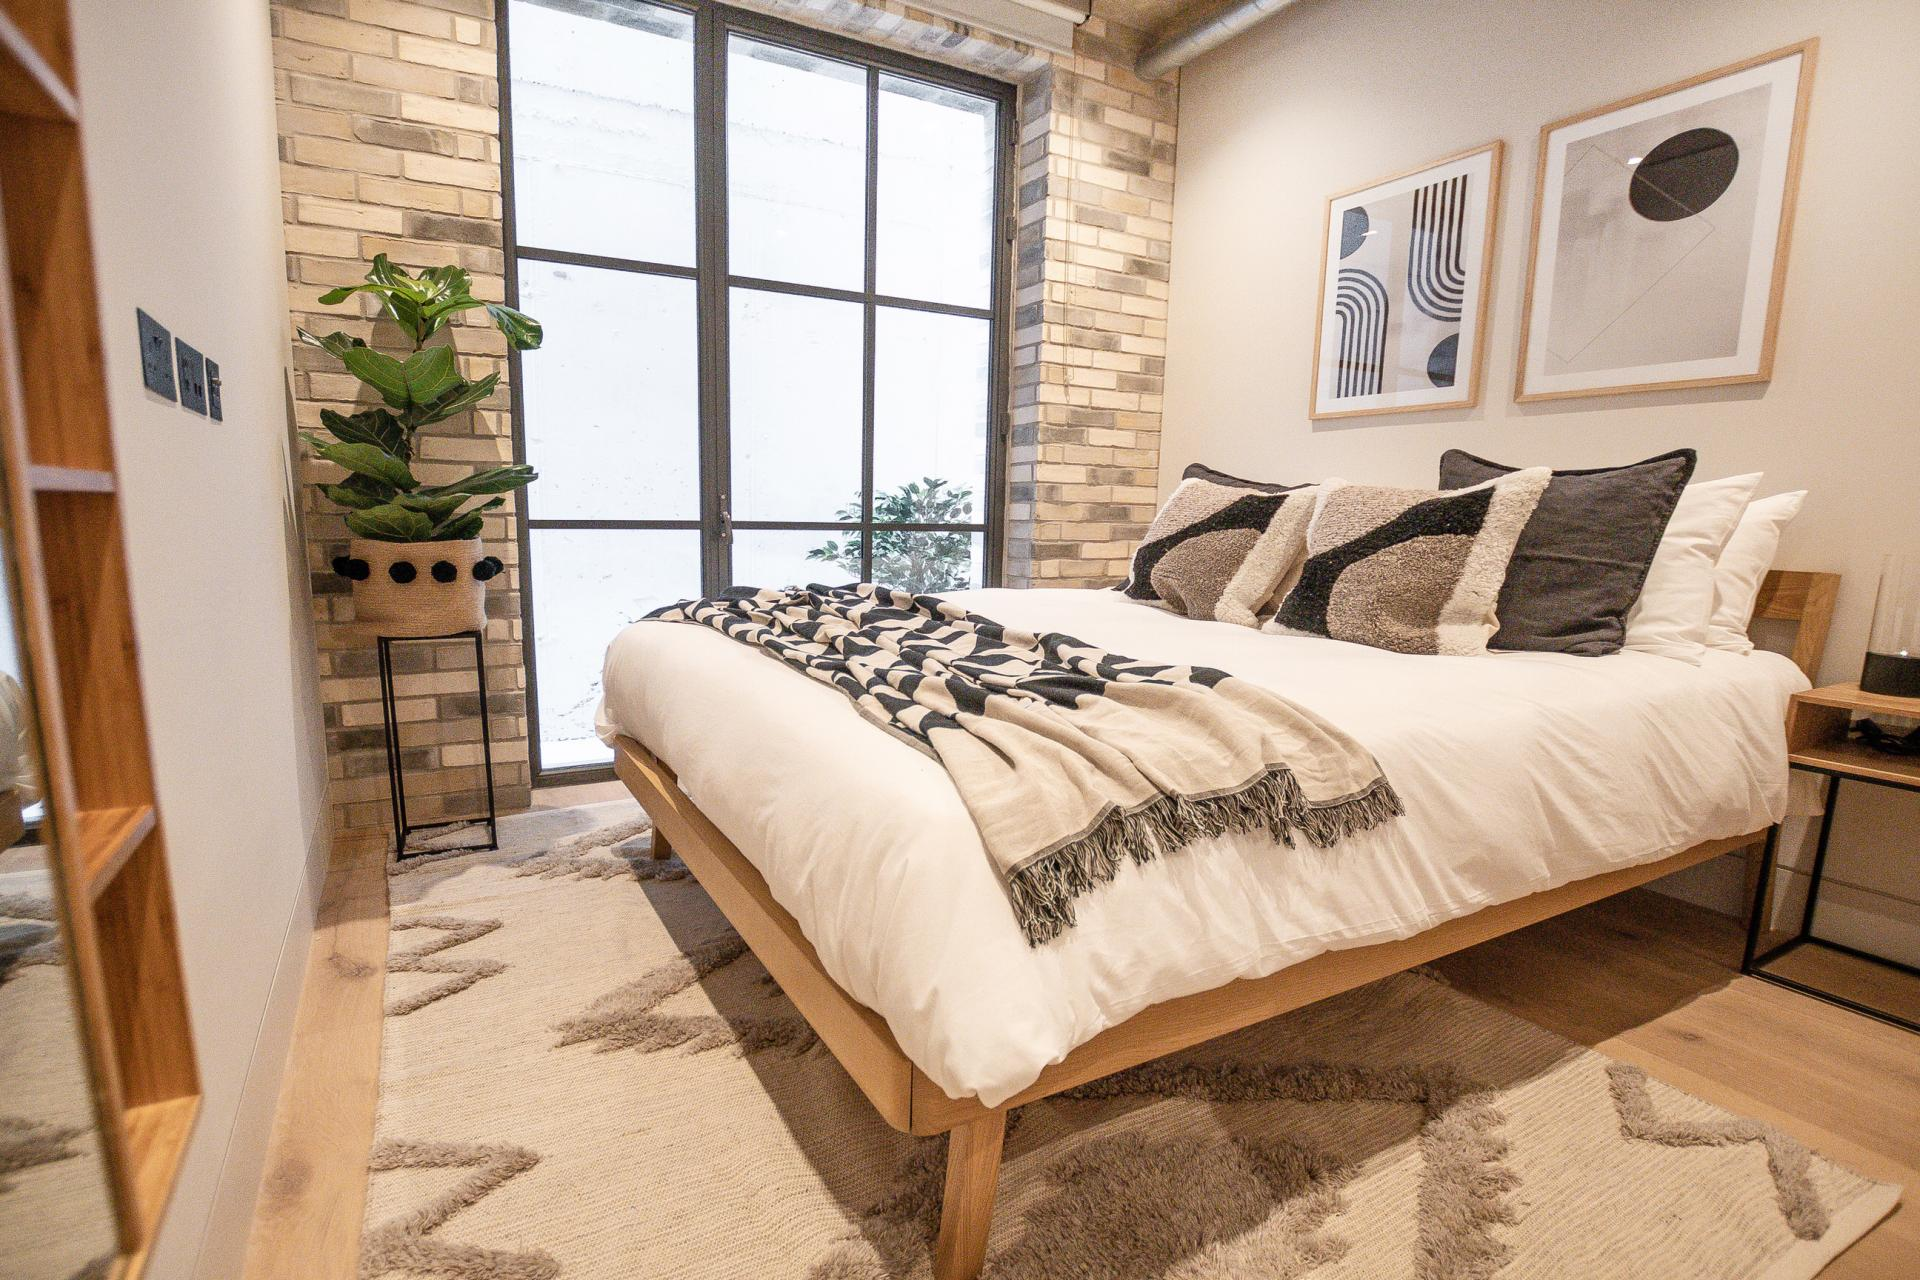 Double bedroom at King's Mews Apartments, Holborn, London - Citybase Apartments